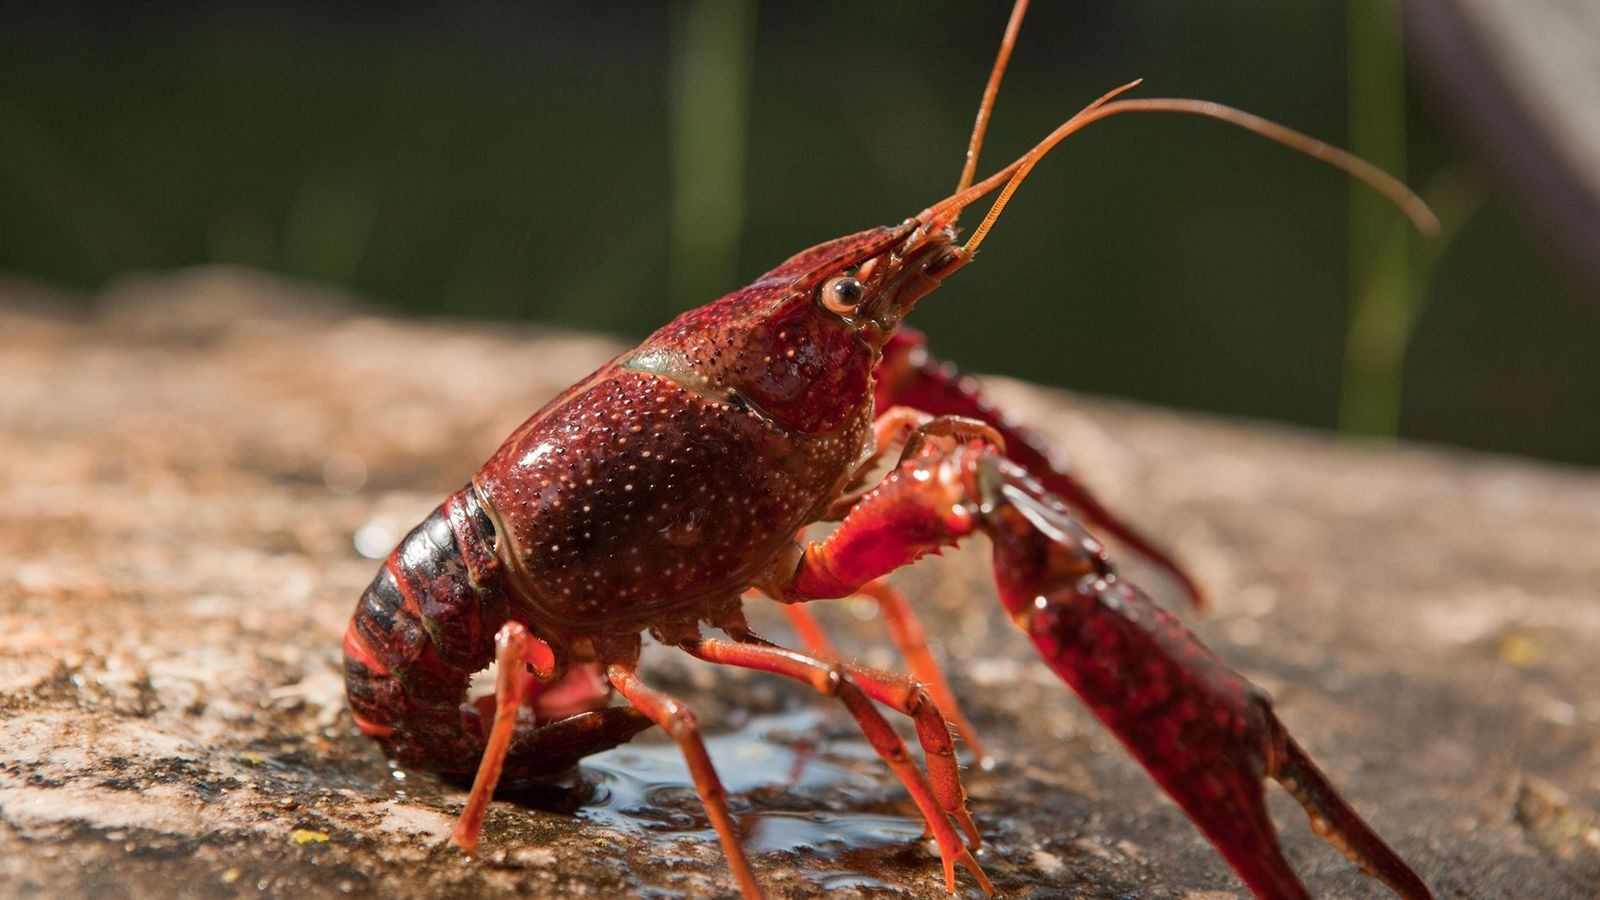 The prolific red swamp crayfish (Procambarus clarkii), native to the Southeastern U.S., has invaded freshwater ecosystems ...